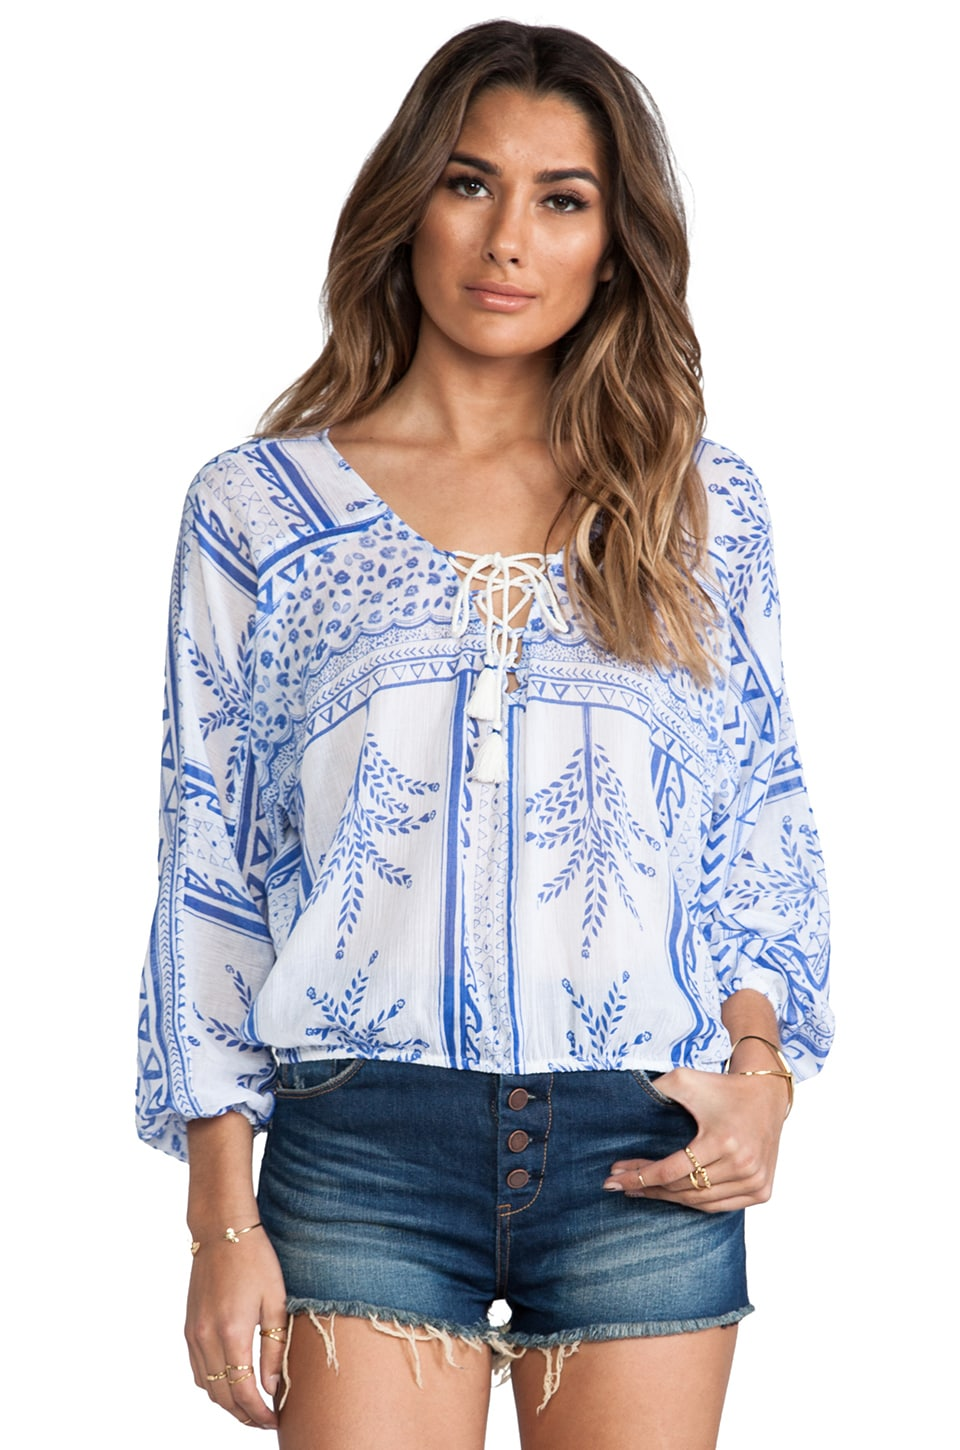 Free People Yo Yo Printed Top in White Combo